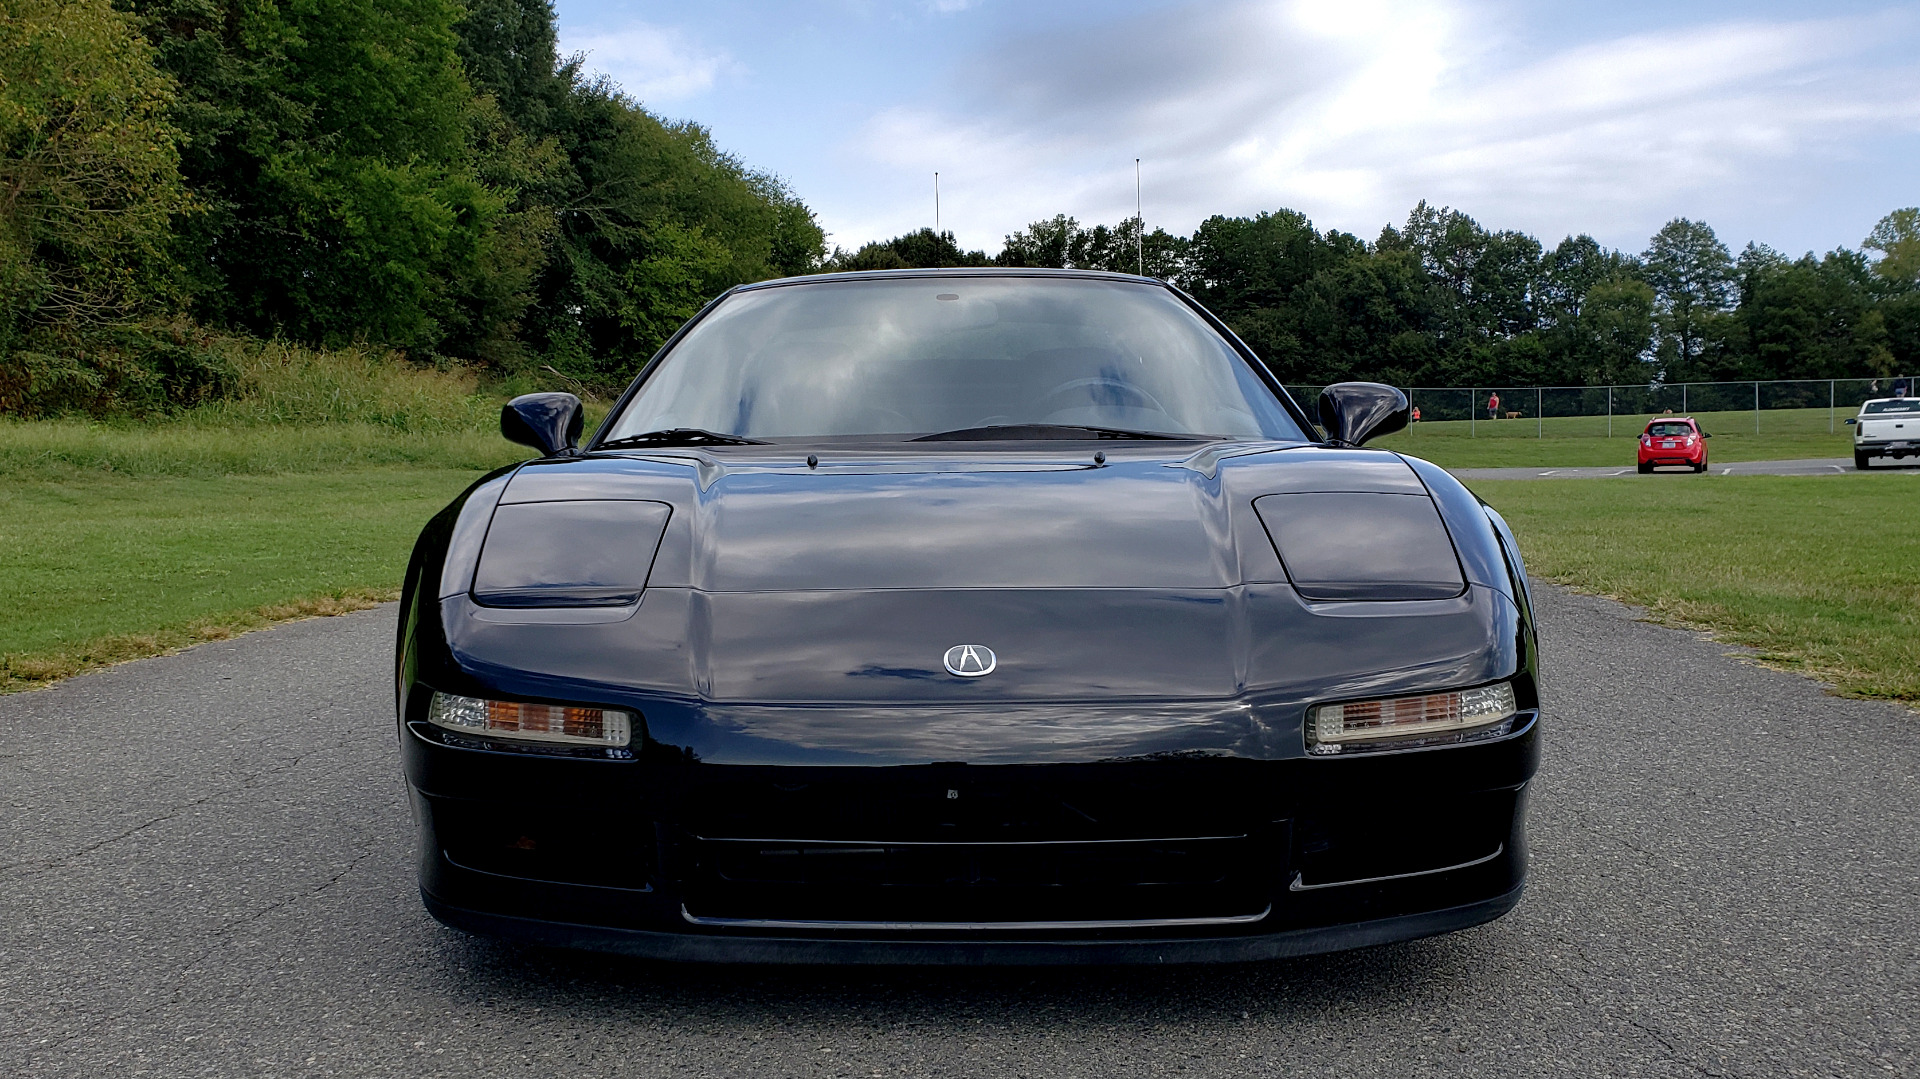 Used 1995 Acura NSX OPEN TOP / 5-SPD MAN / LOW MILES / SUPER CLEAN for sale Sold at Formula Imports in Charlotte NC 28227 4